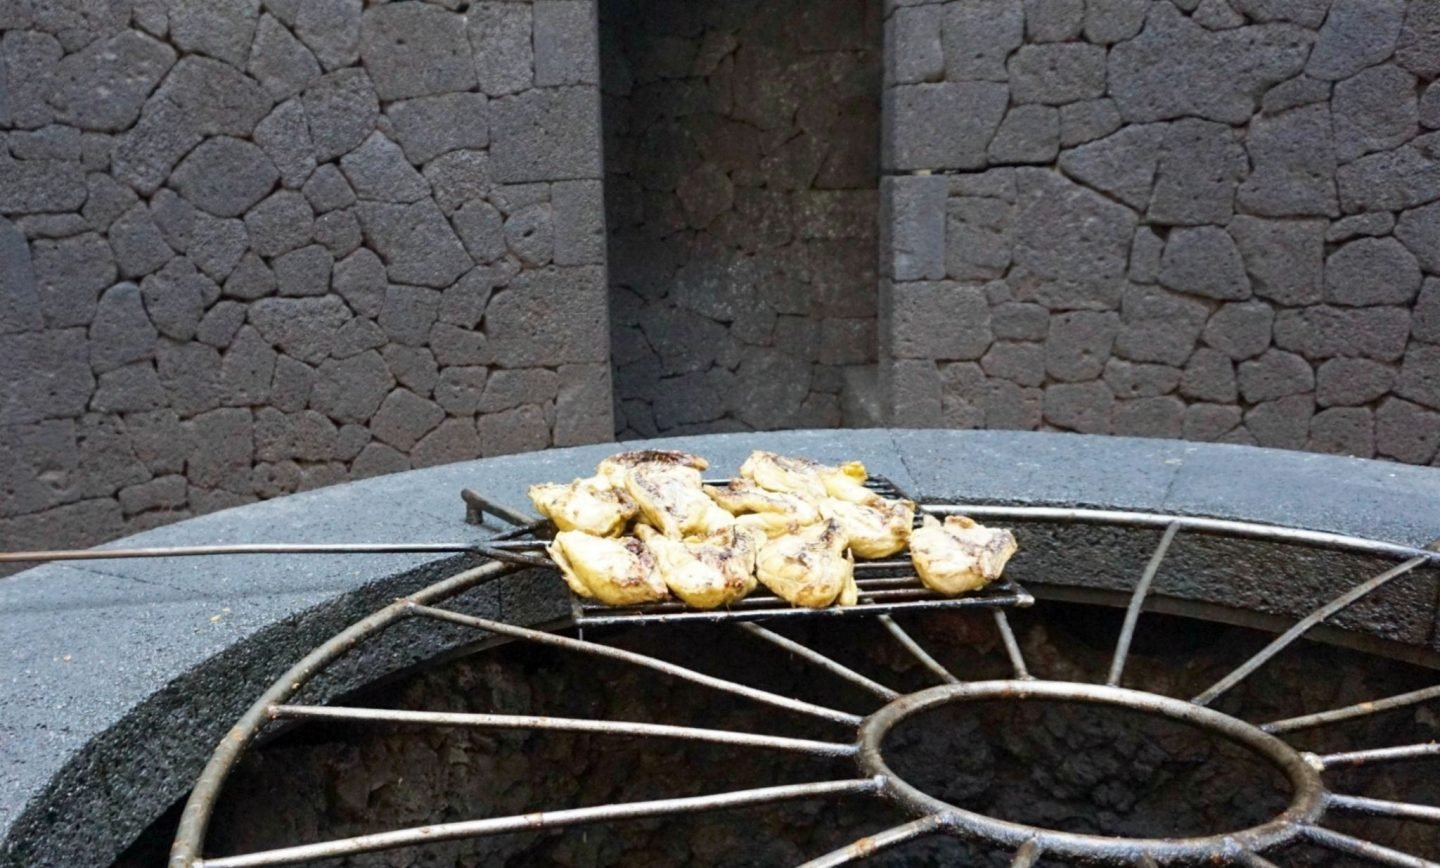 Chicken cooking on volcano heat at El Diablo Restaurant at Timanfaya National Park